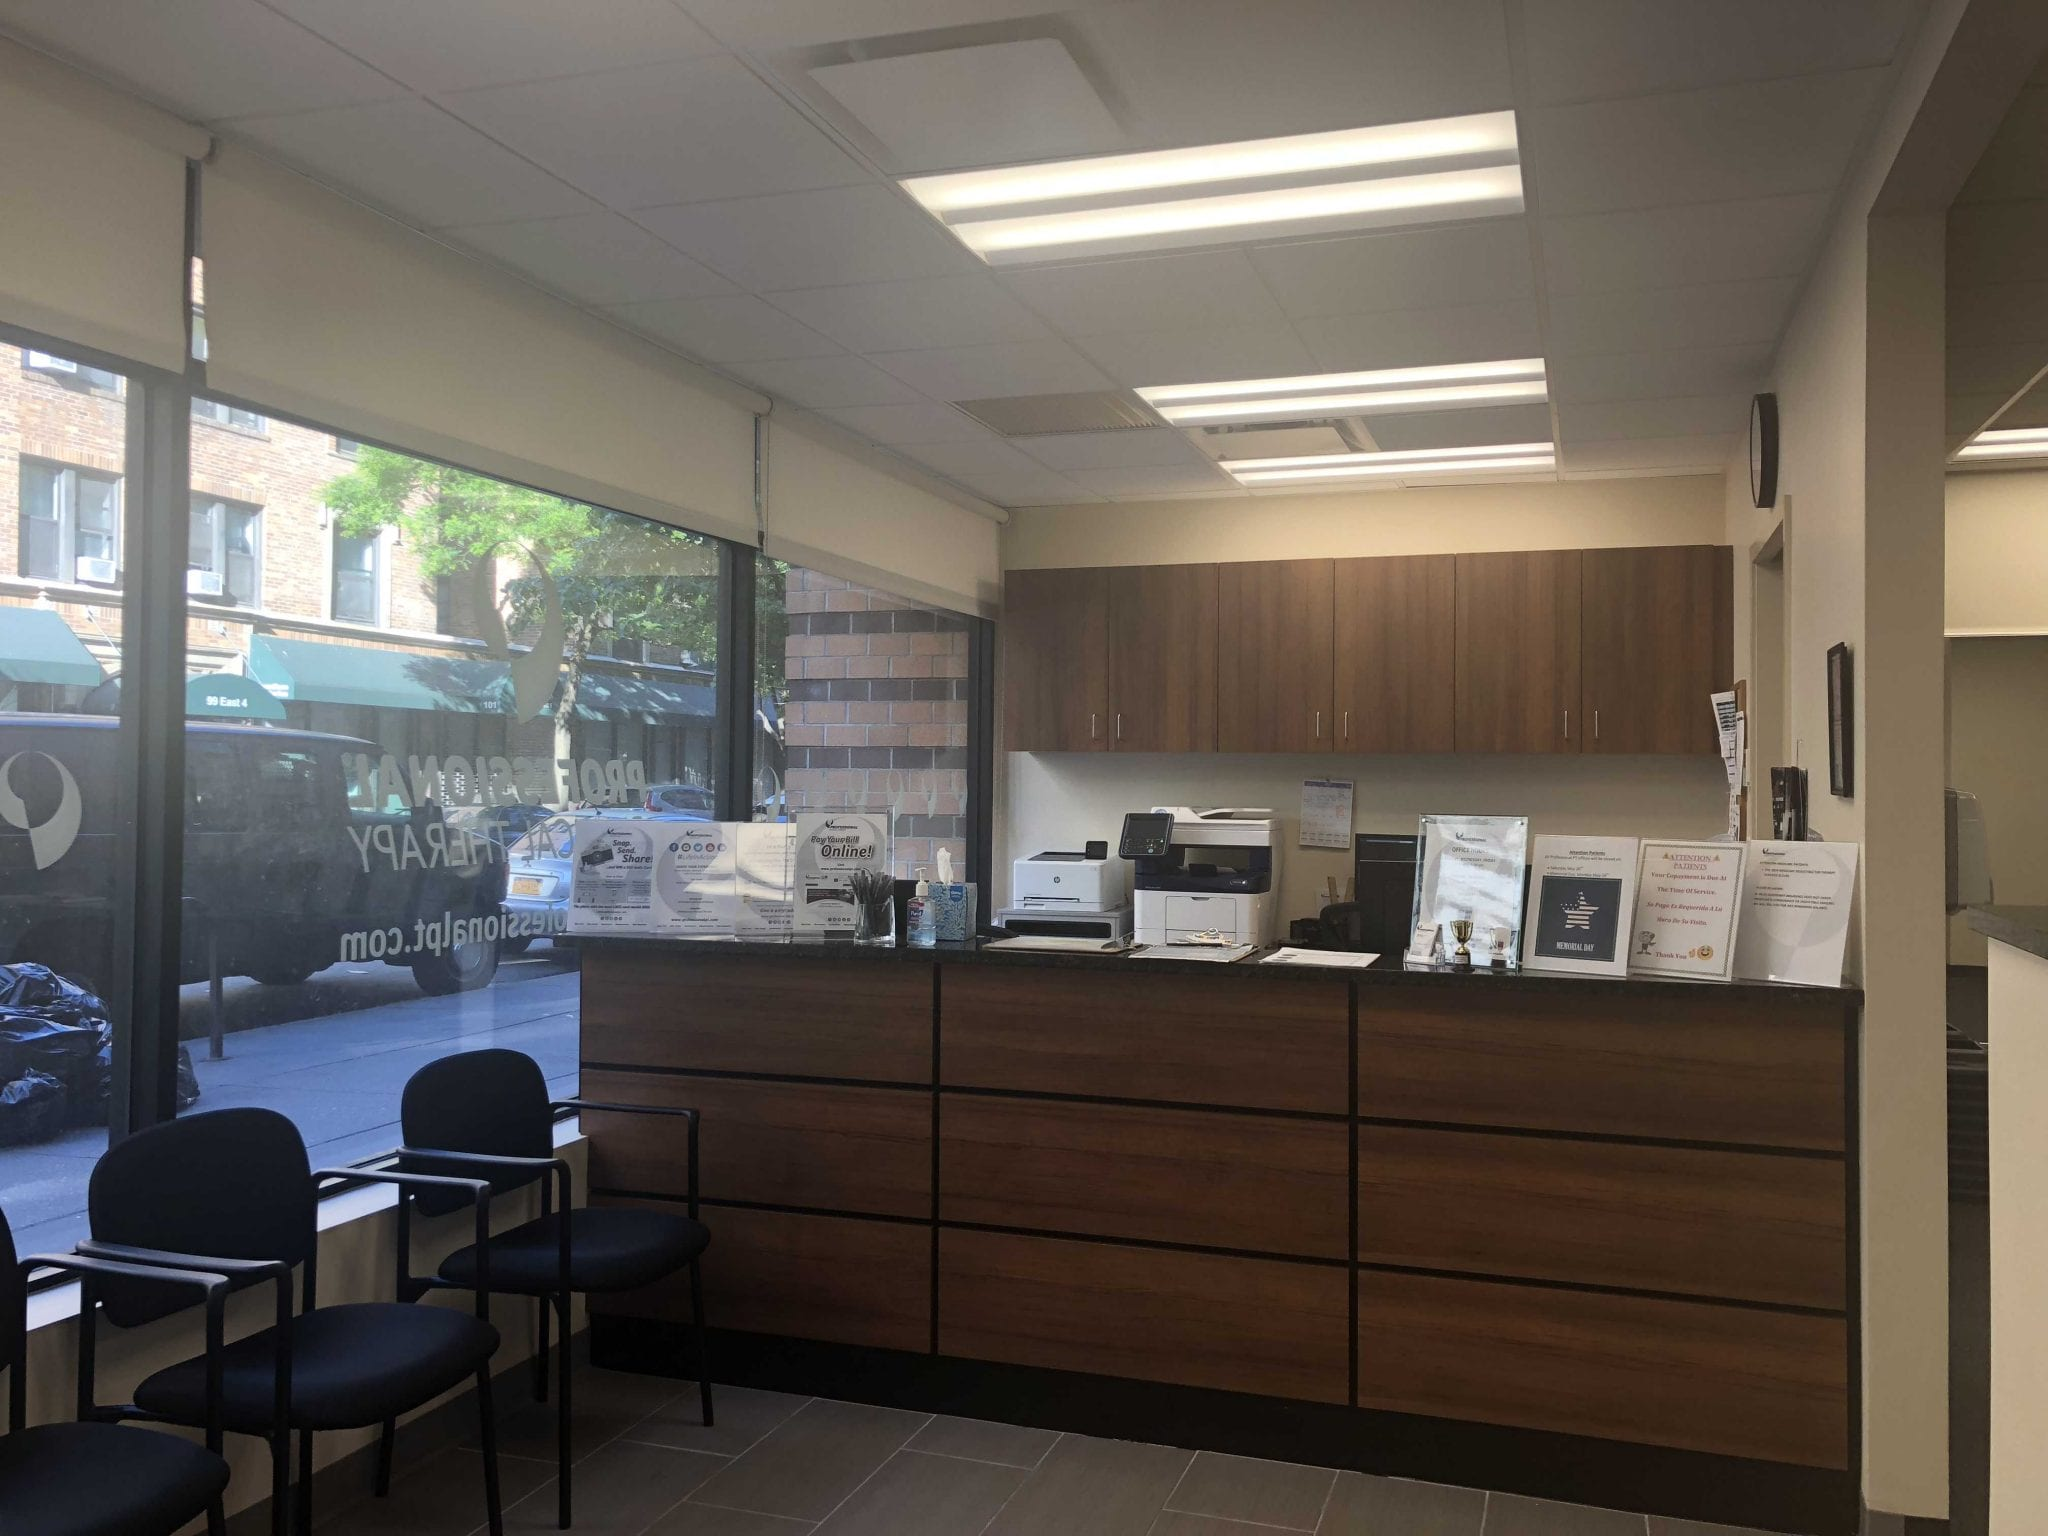 An image of the front desk at our physical therapy clinic in lower Manhattan, New York City, at East Village.